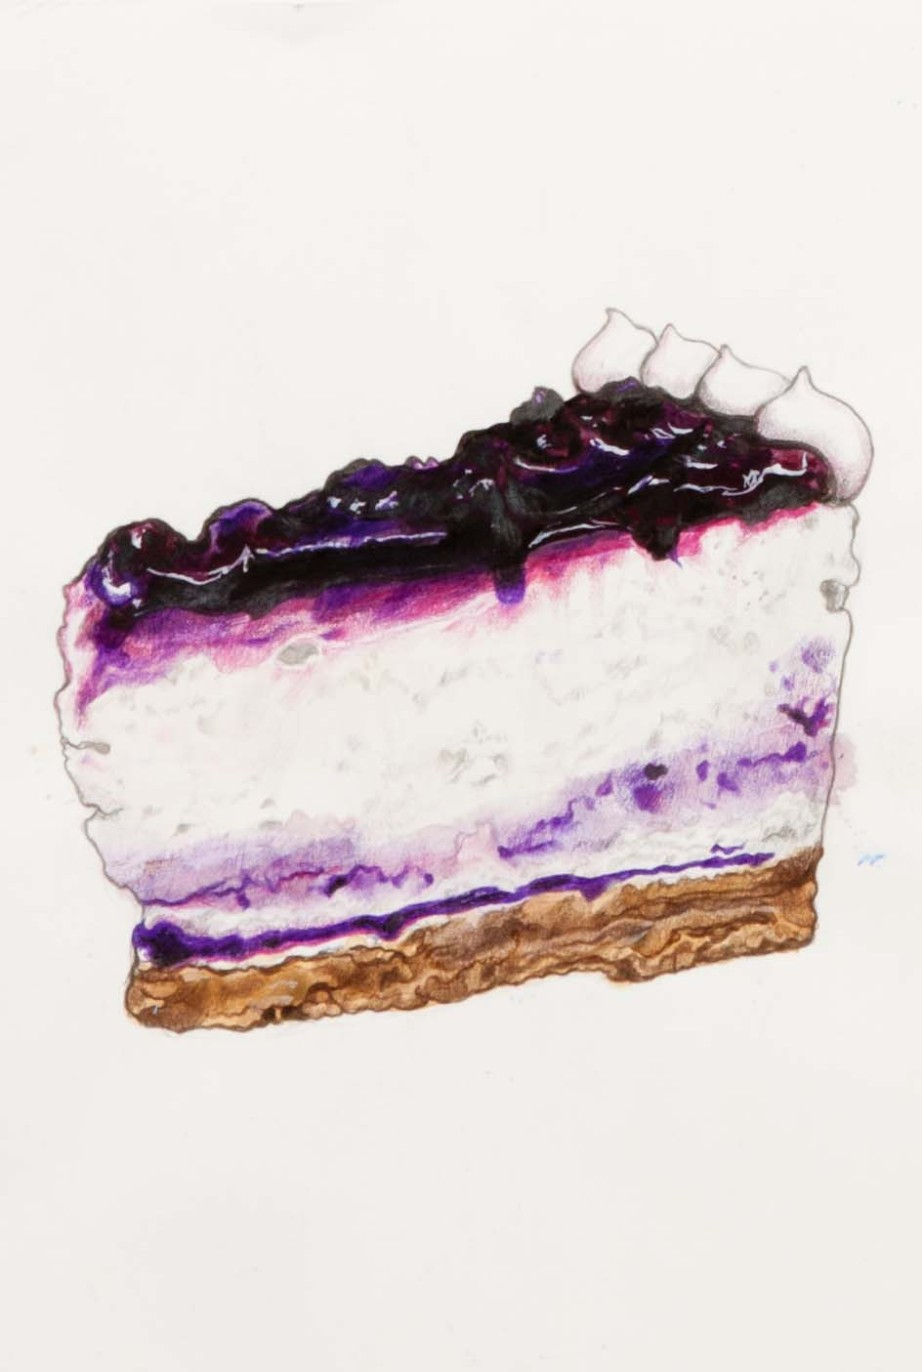 Blueberry cheescake - Volcanic Crystallization